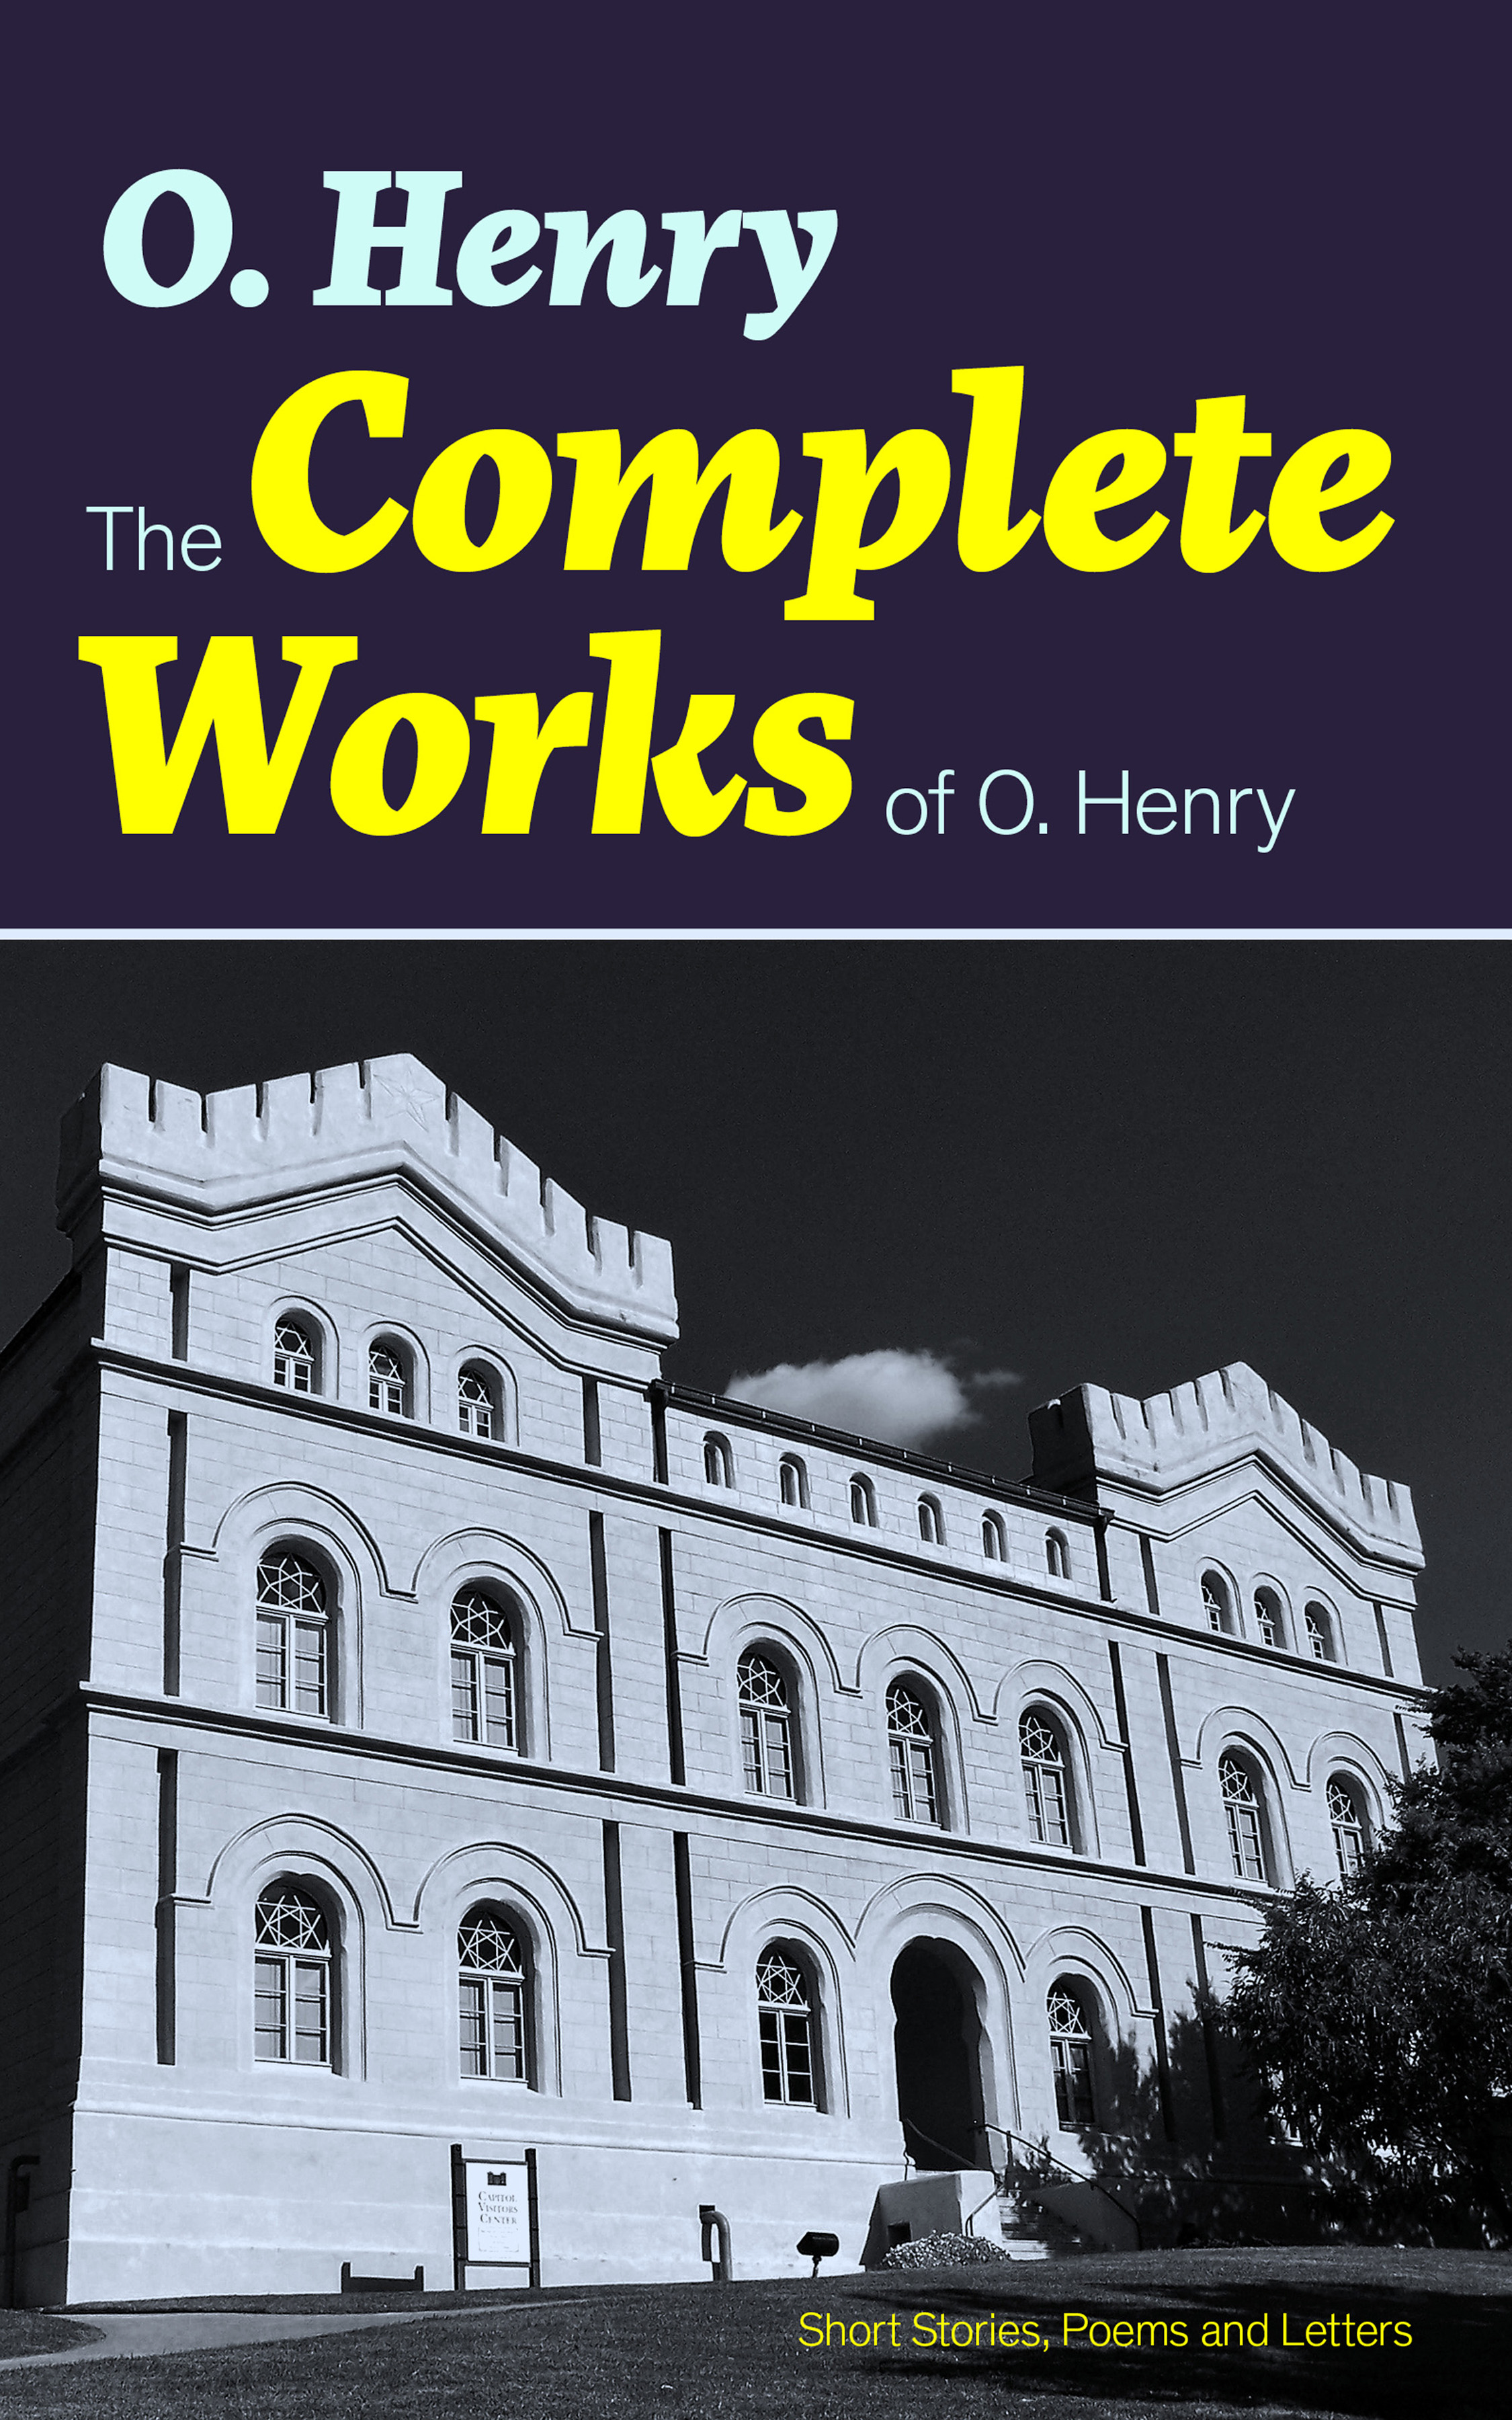 O. Henry The Complete Works of O. Henry: Short Stories, Poems and Letters